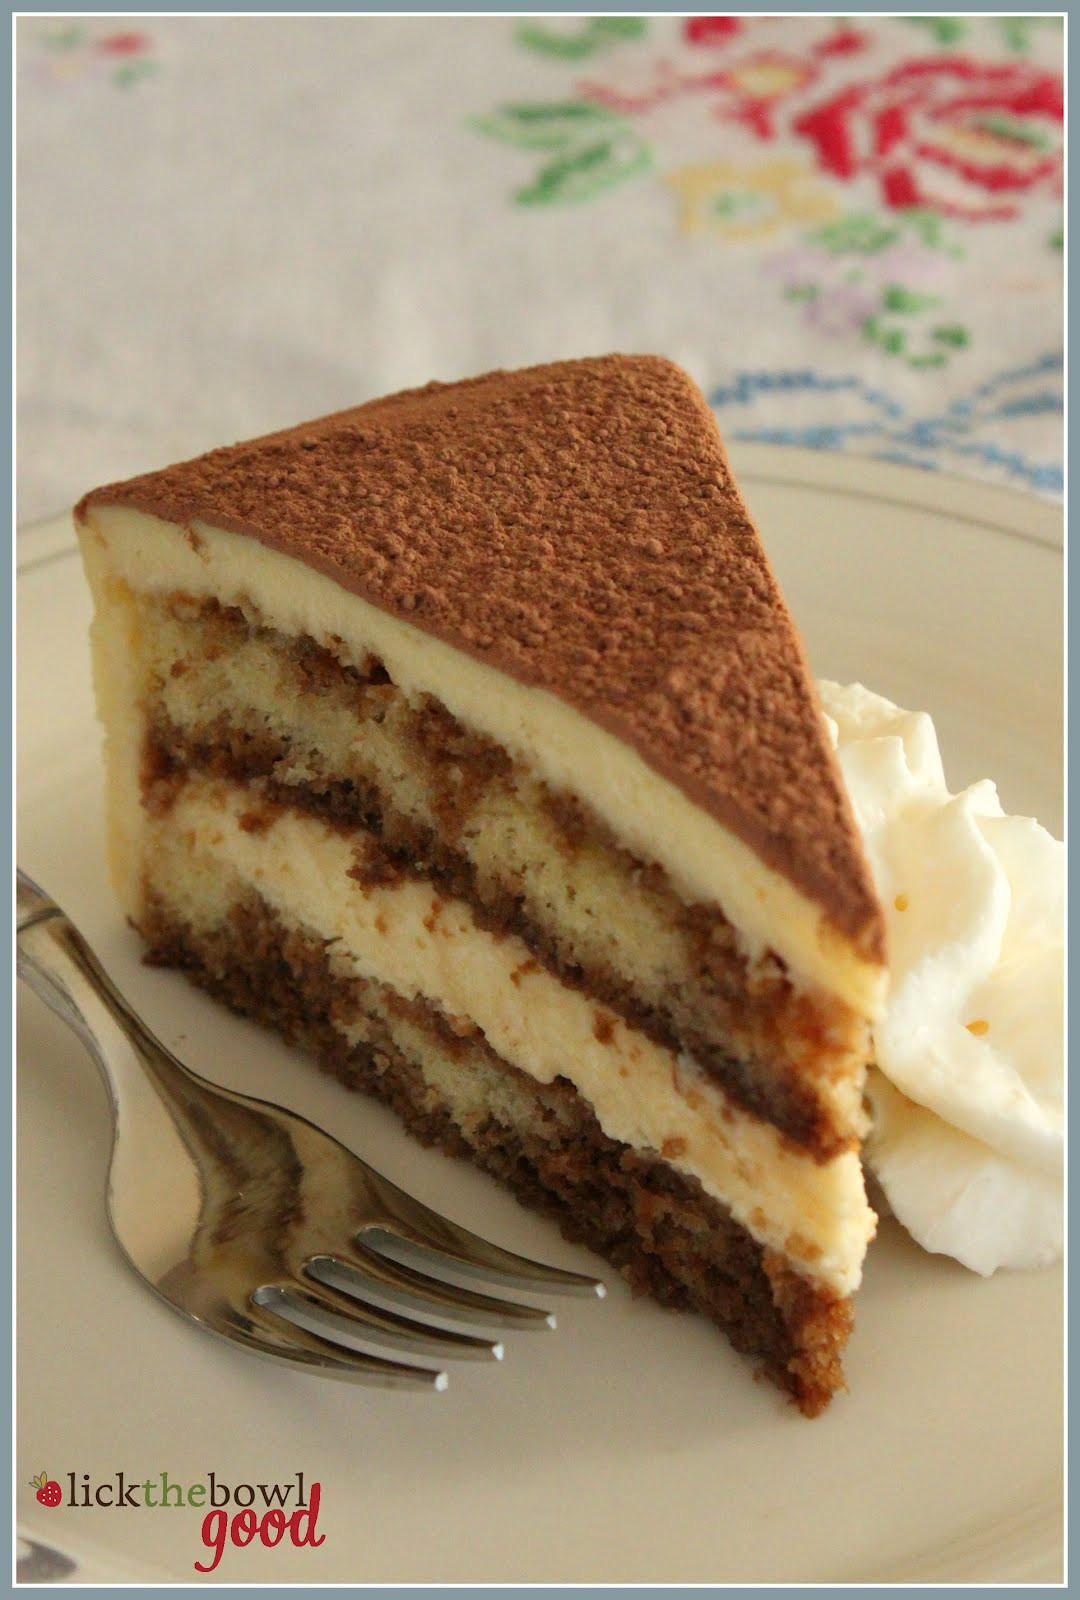 Best ideas about Tiramisu Birthday Cake . Save or Pin Lick The Bowl Good A Birthday Cake For My Hubs Now.